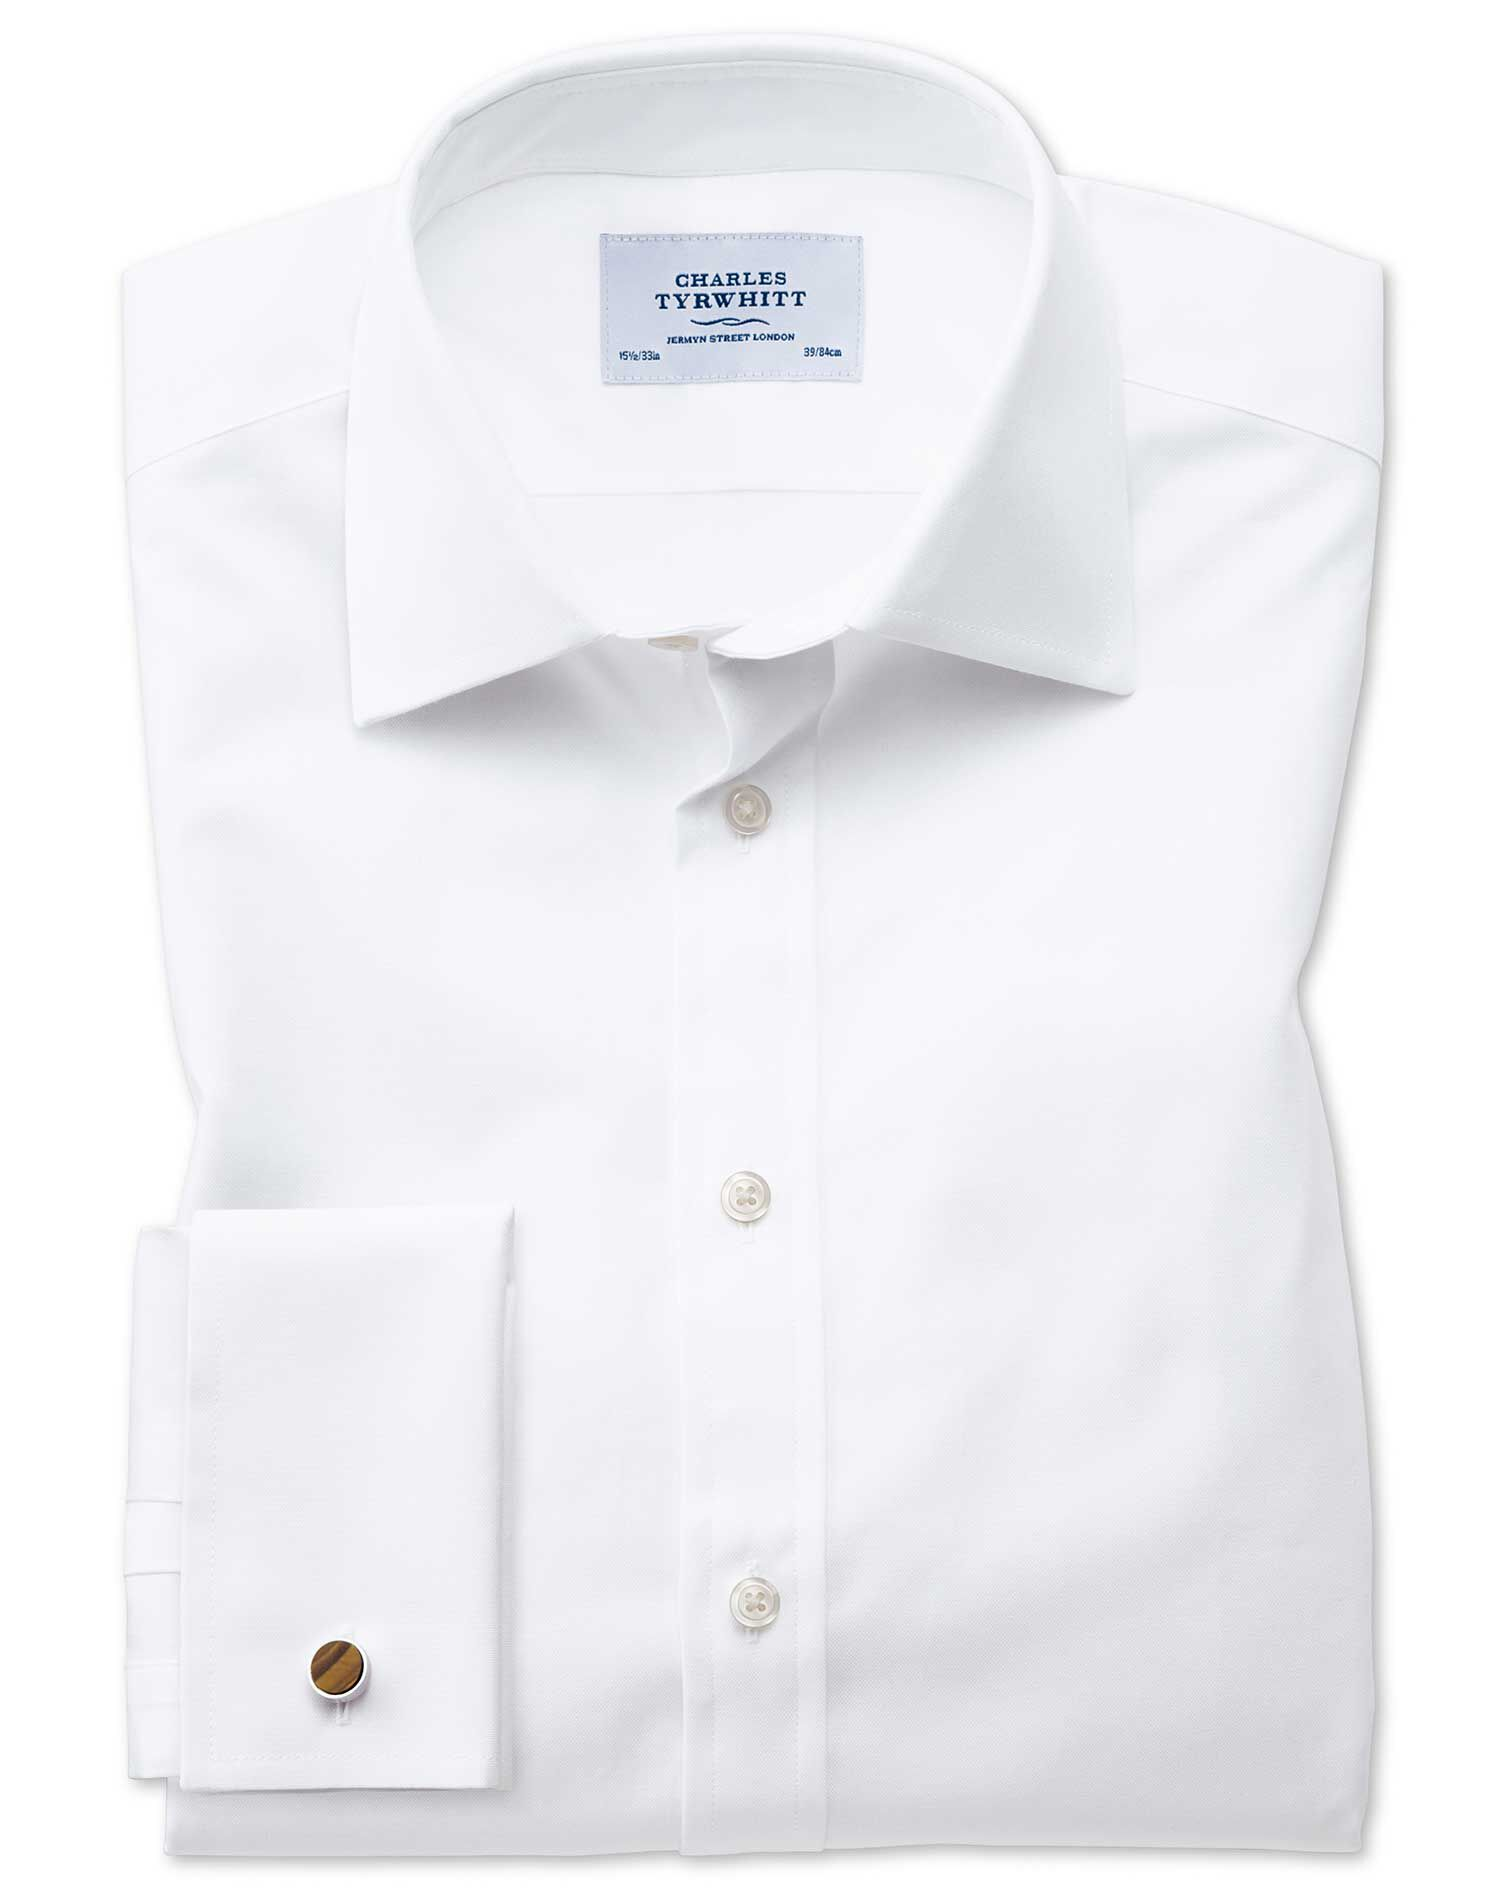 Extra Slim Fit Oxford White Cotton Formal Shirt Double Cuff Size 17/33 by Charles Tyrwhitt